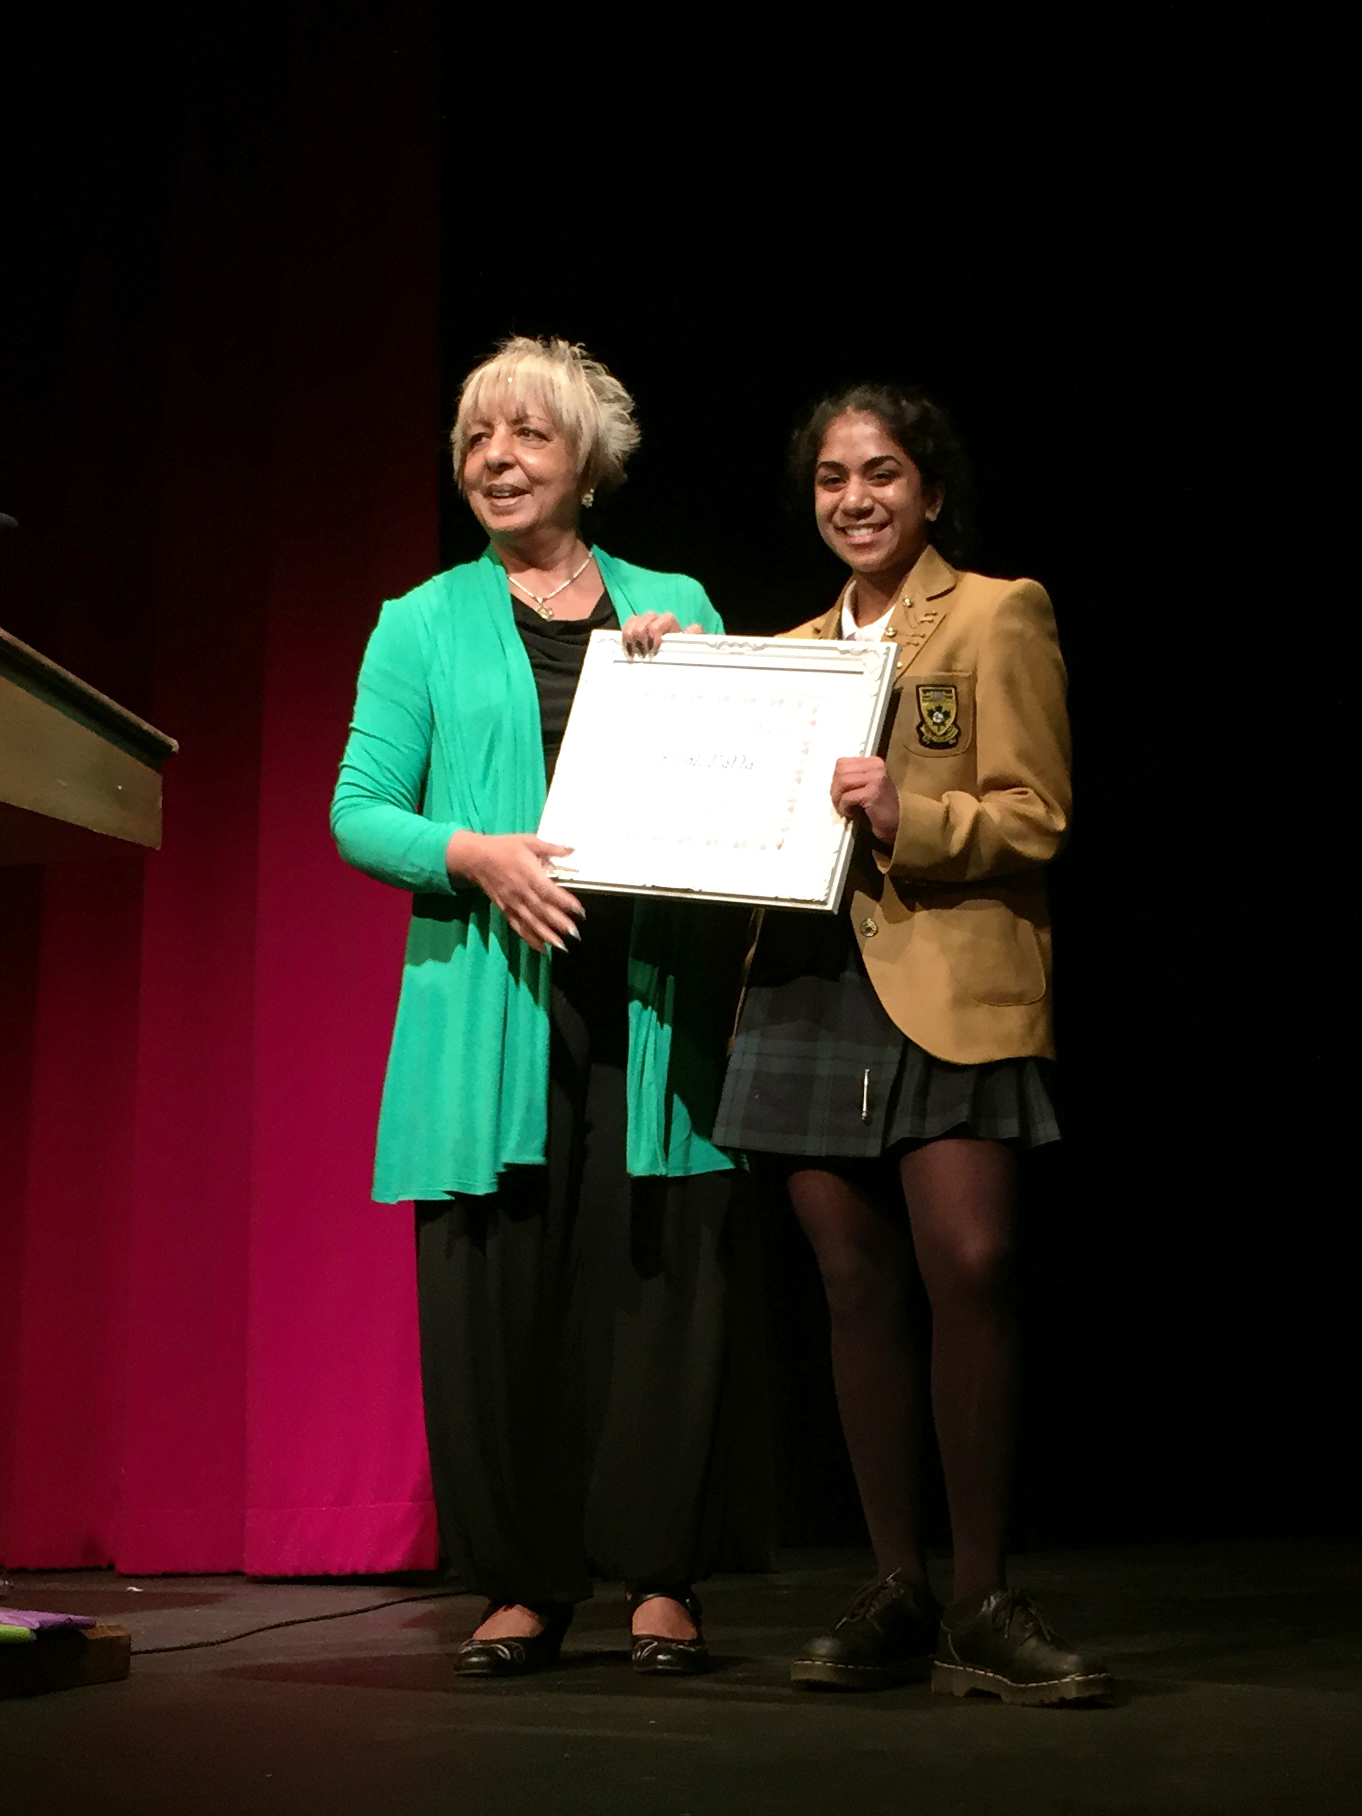 Pummy Kaur, from P.A.G.E, presents Anjali with the Gandhi Peace Award. Senior School Assembly, March 3, 2015.